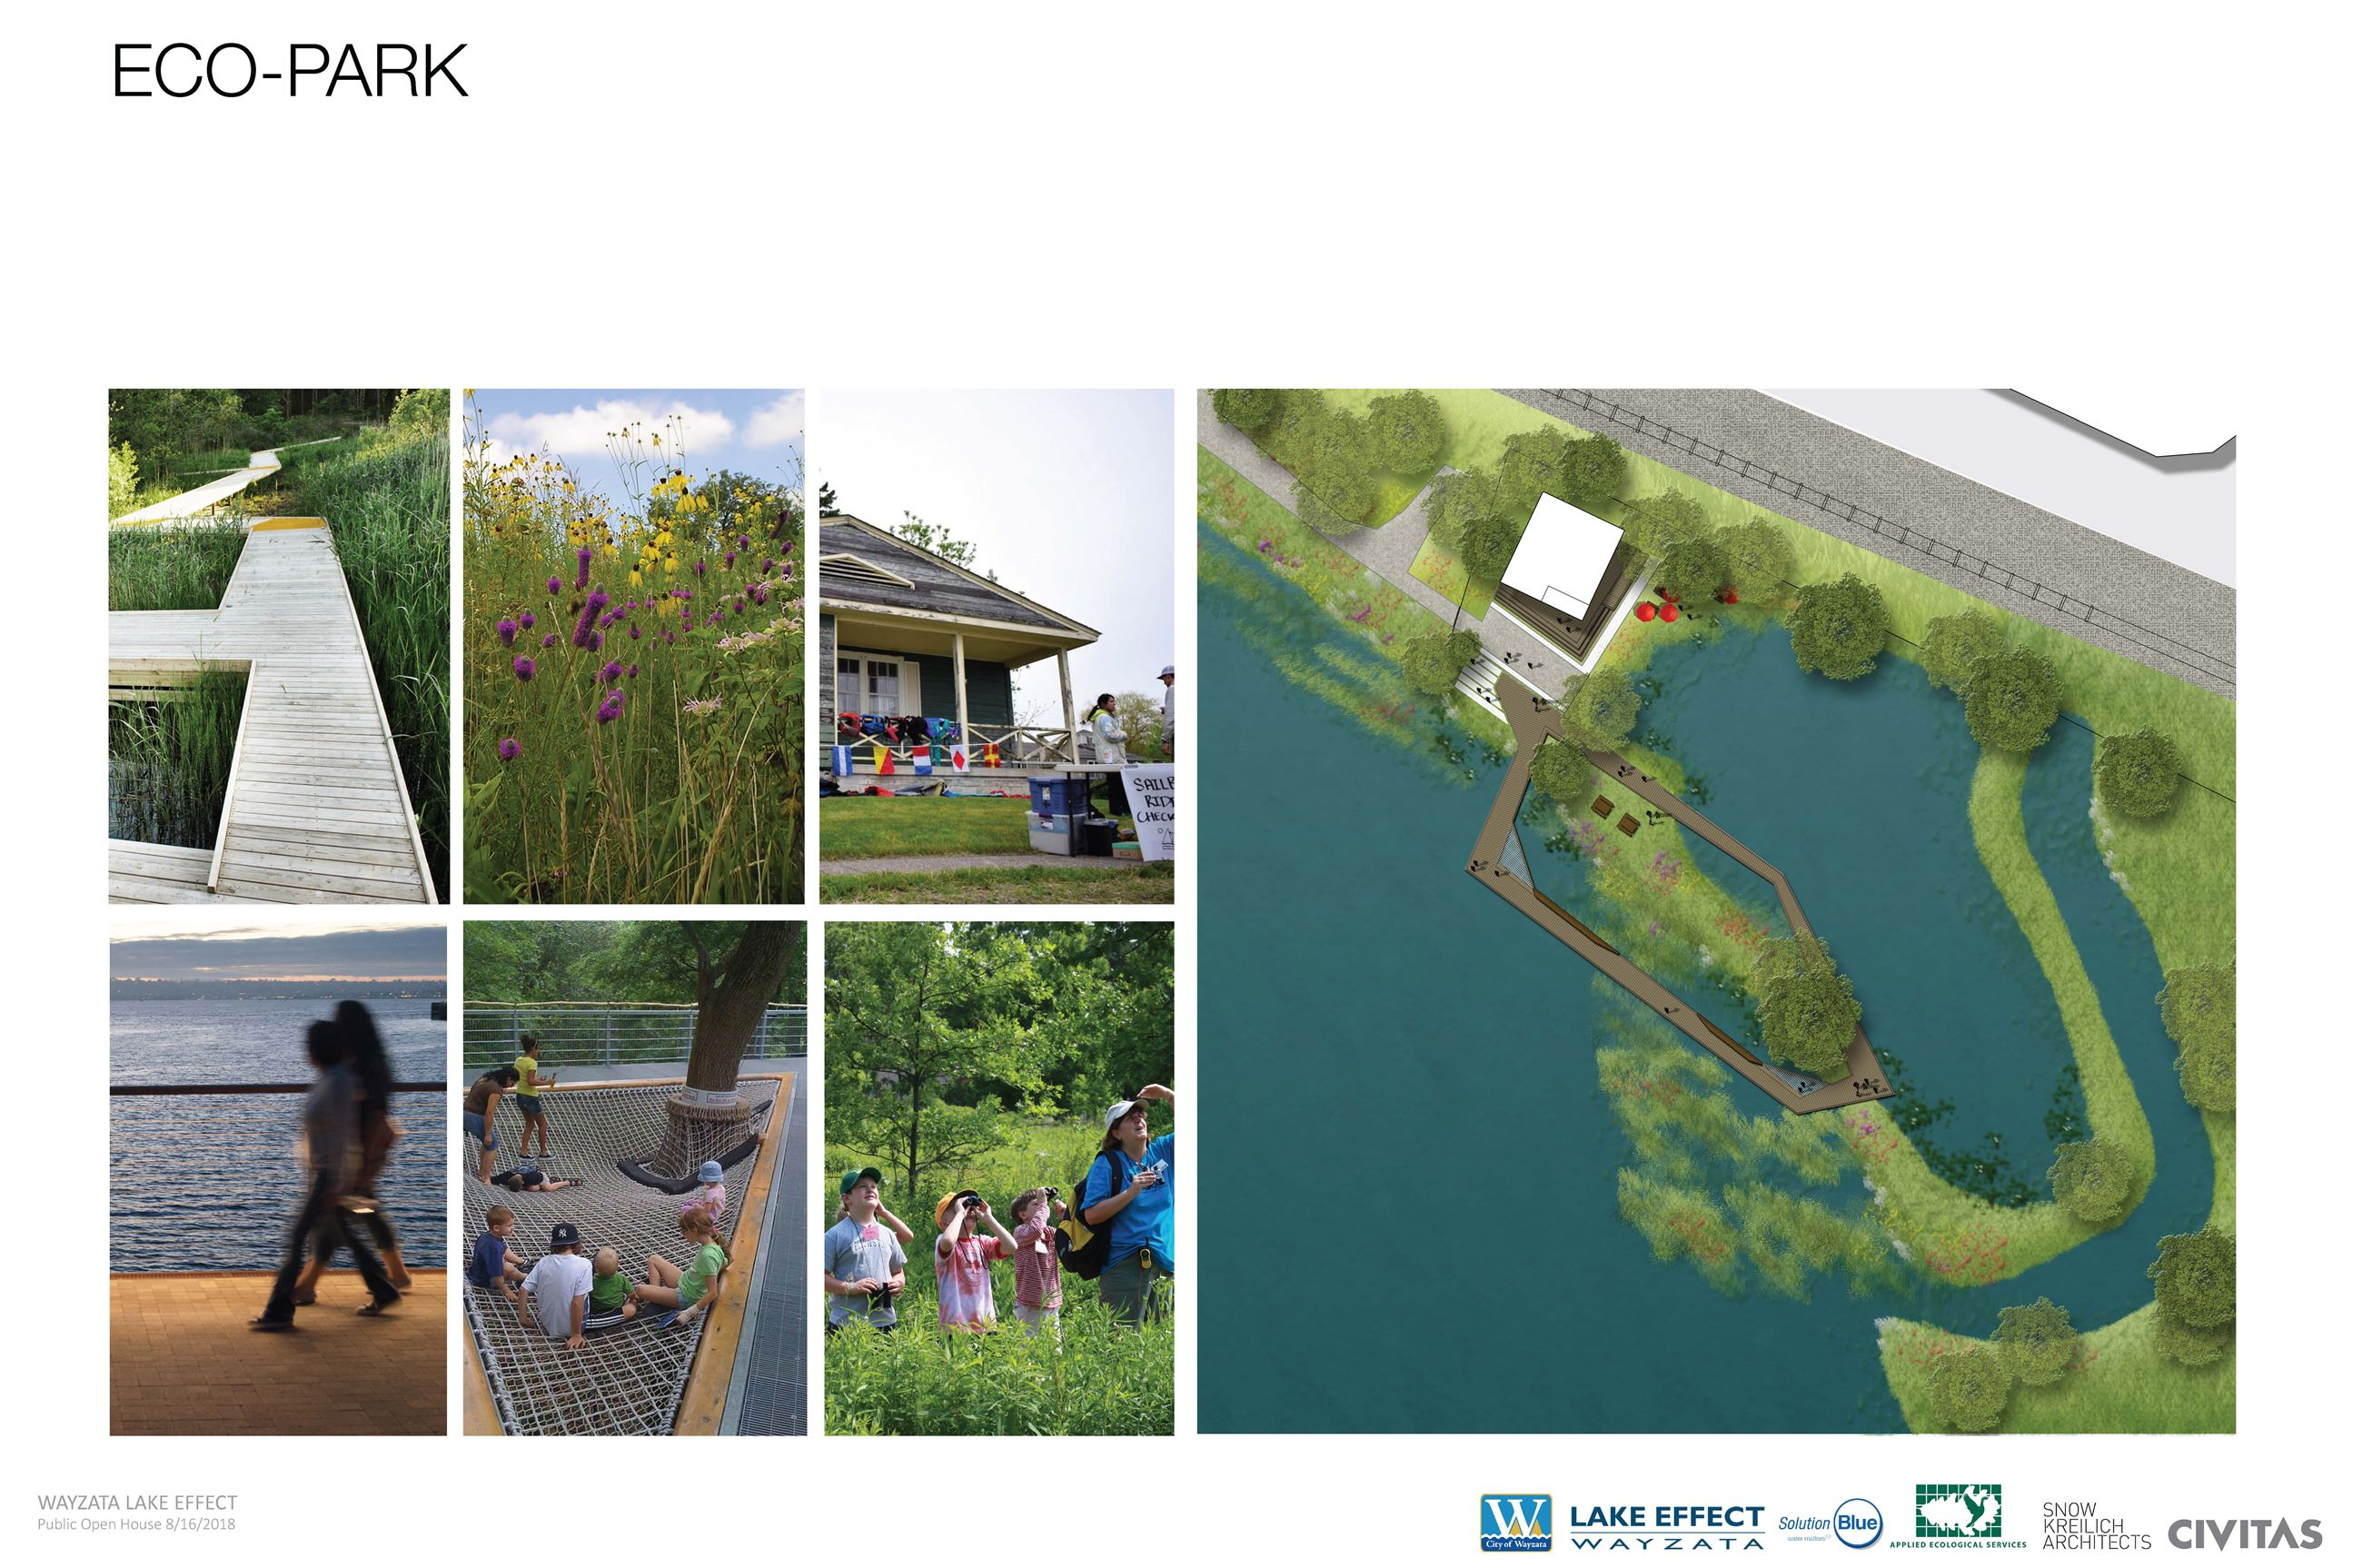 18.08-16 WLE Depot Eco Park Boards_Page_2